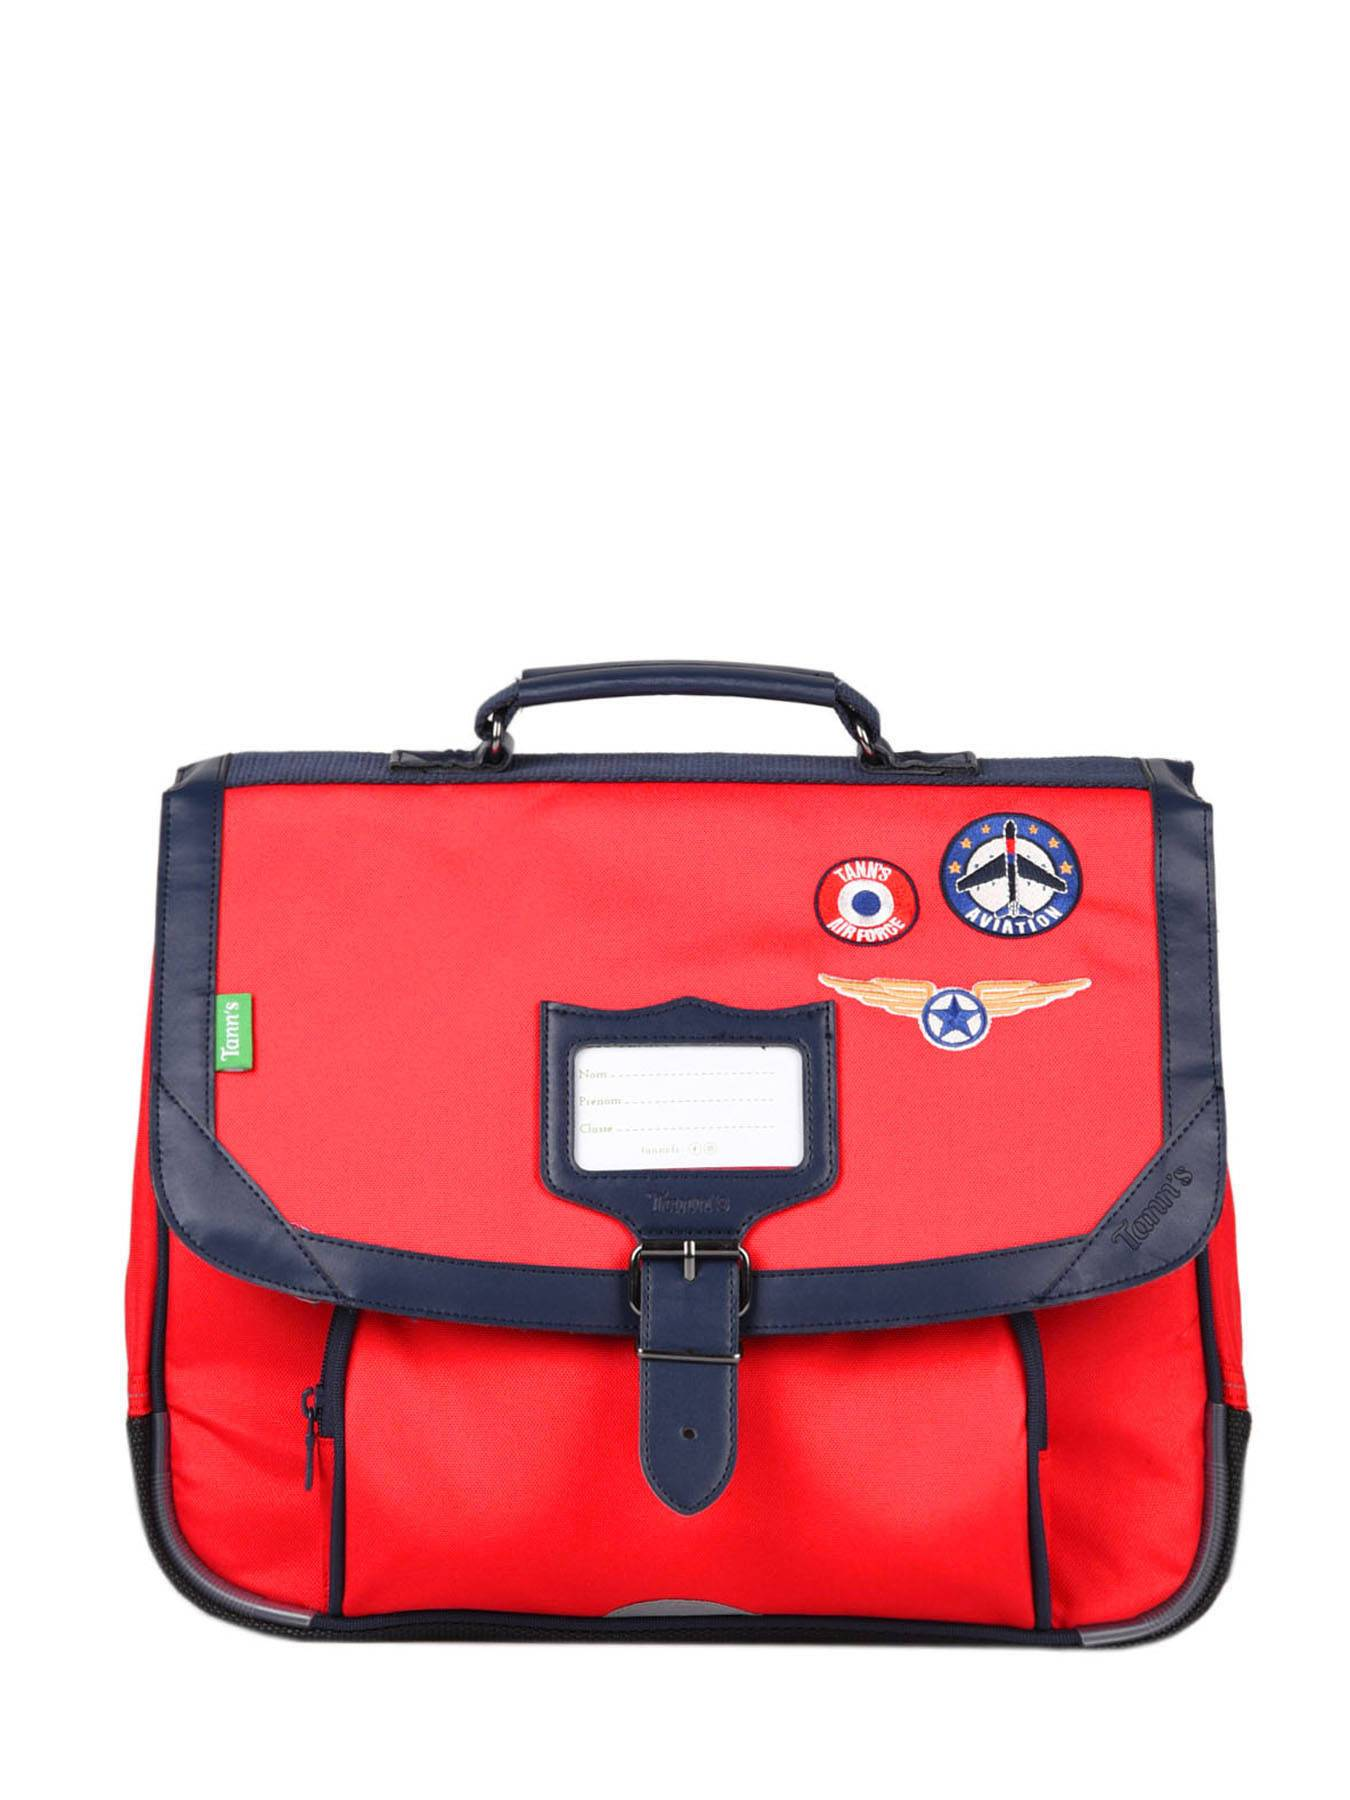 TANN'S Cartable 1 Compartiment Tann's Rouge